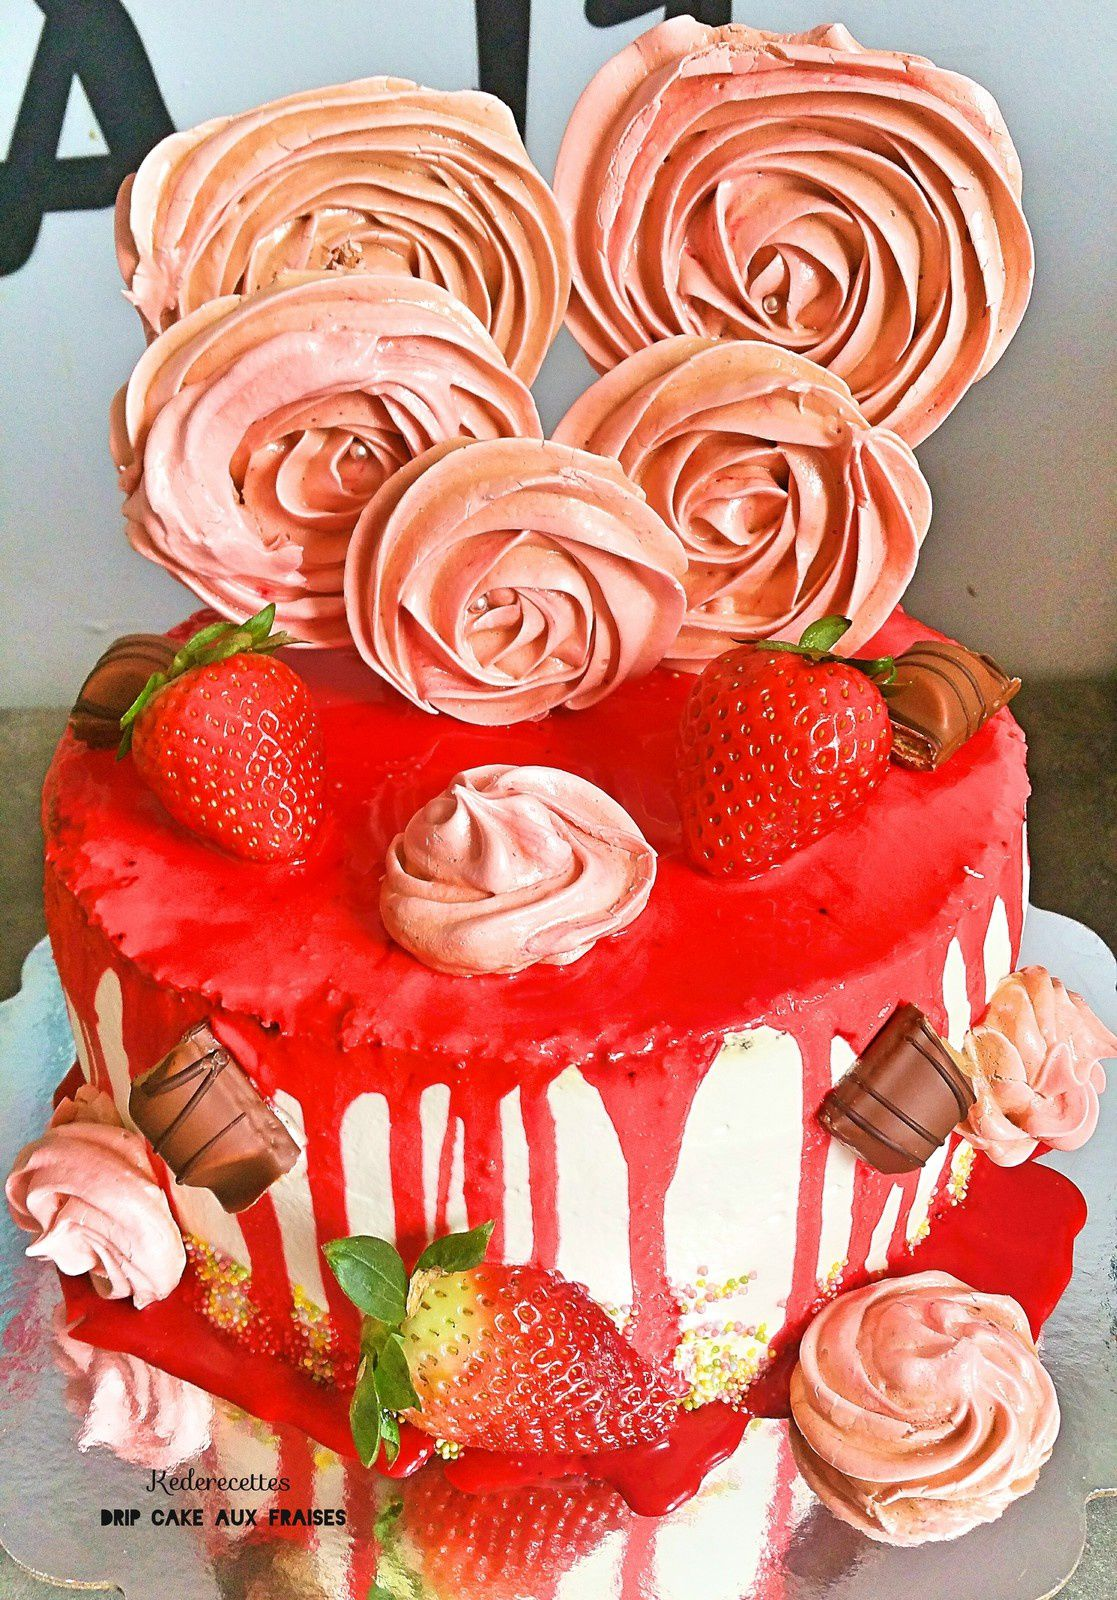 Drip Cake Girly aux fraises